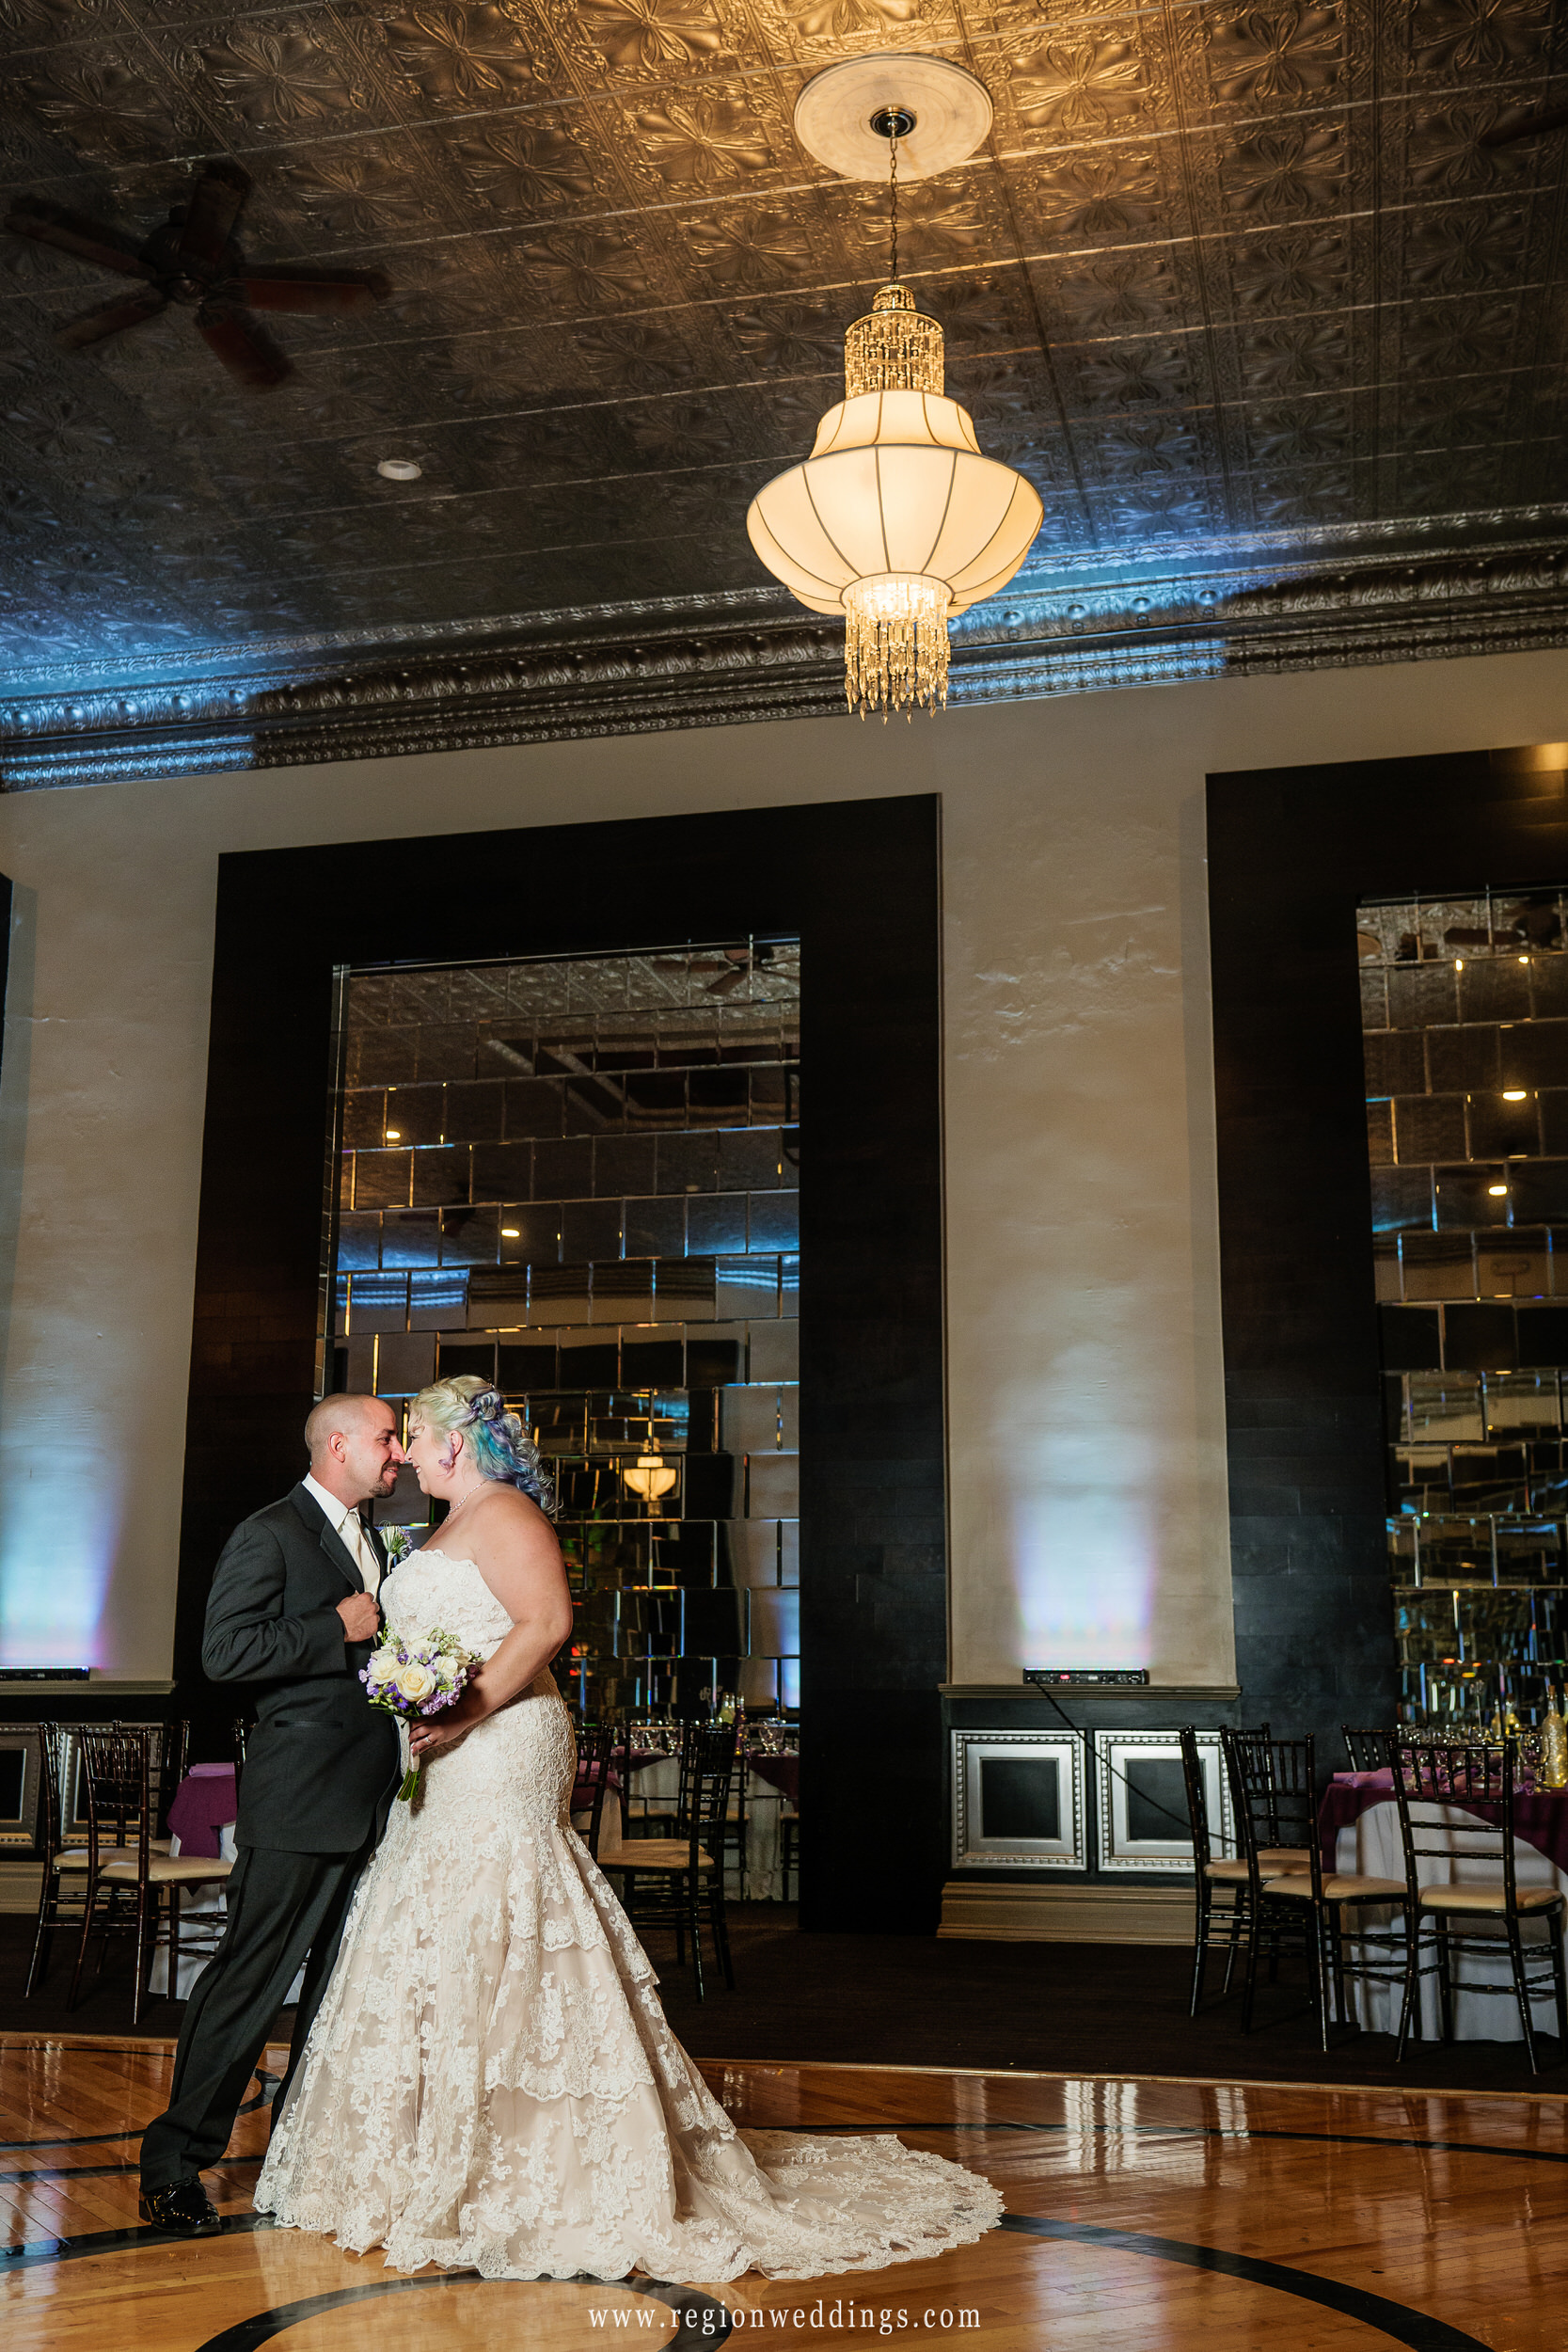 Nose to nose on the dance floor at The Allure in Laporte, Indiana at a September wedding.